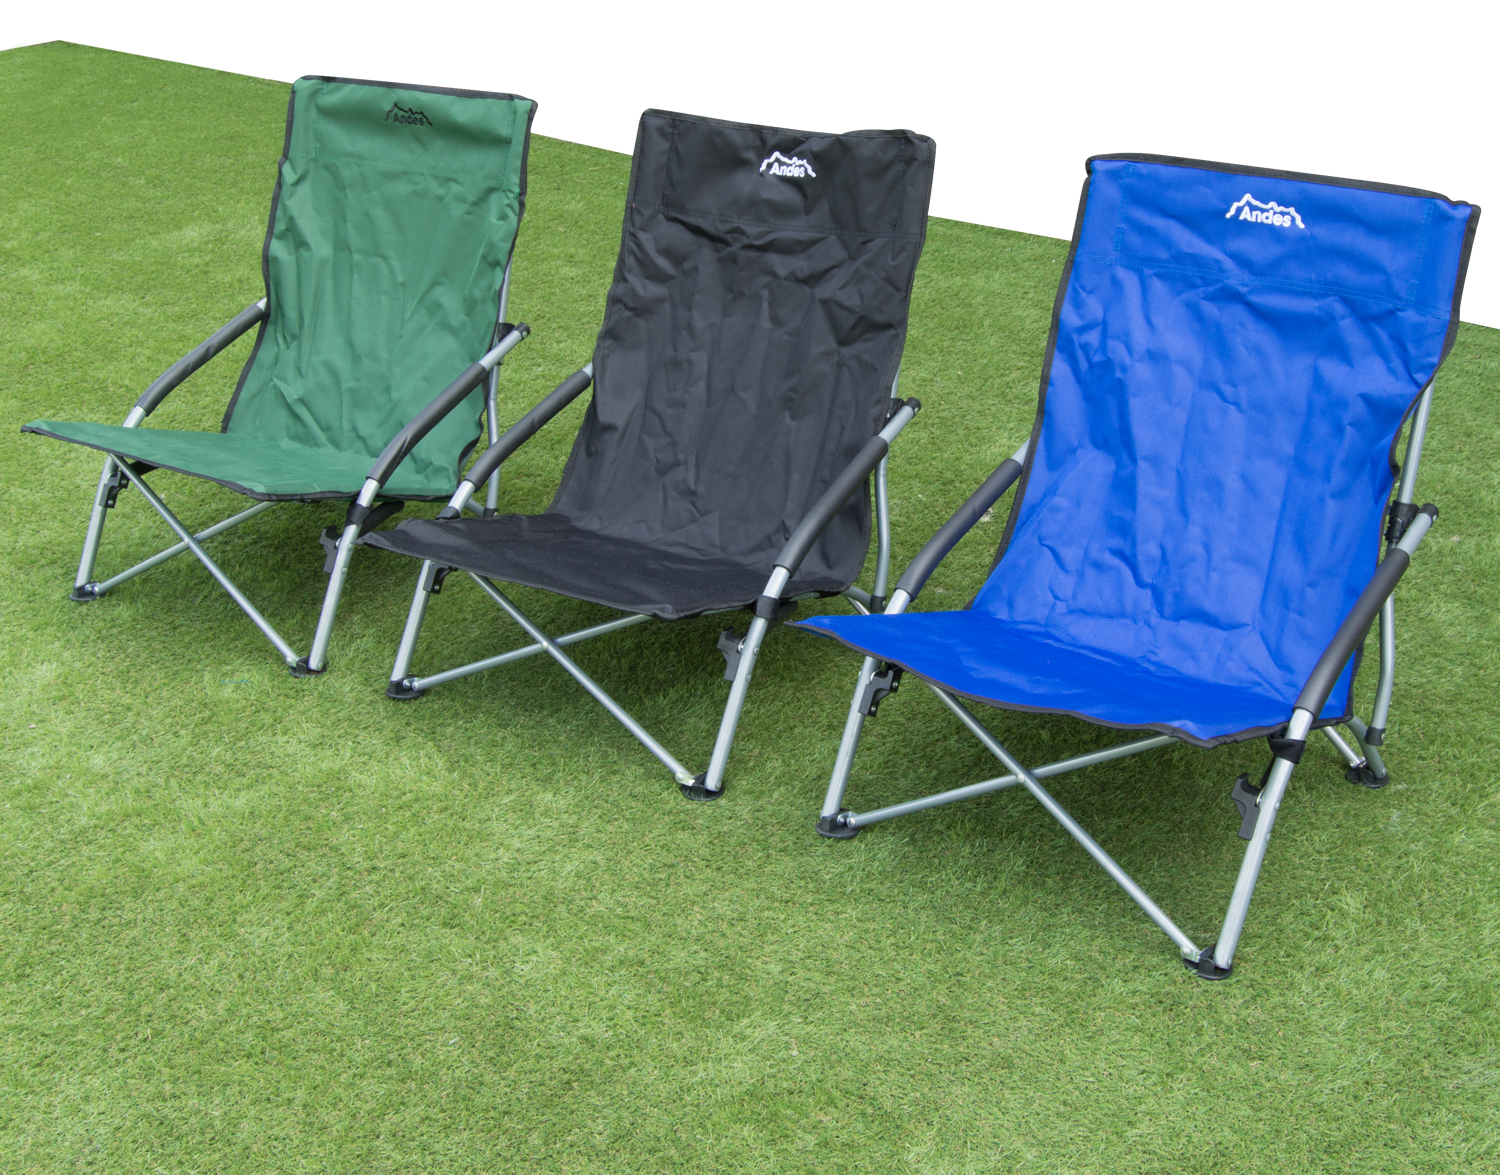 Andes Low Folding Beach Fishing Camping Deck Chair Outdoor Garden Lounger